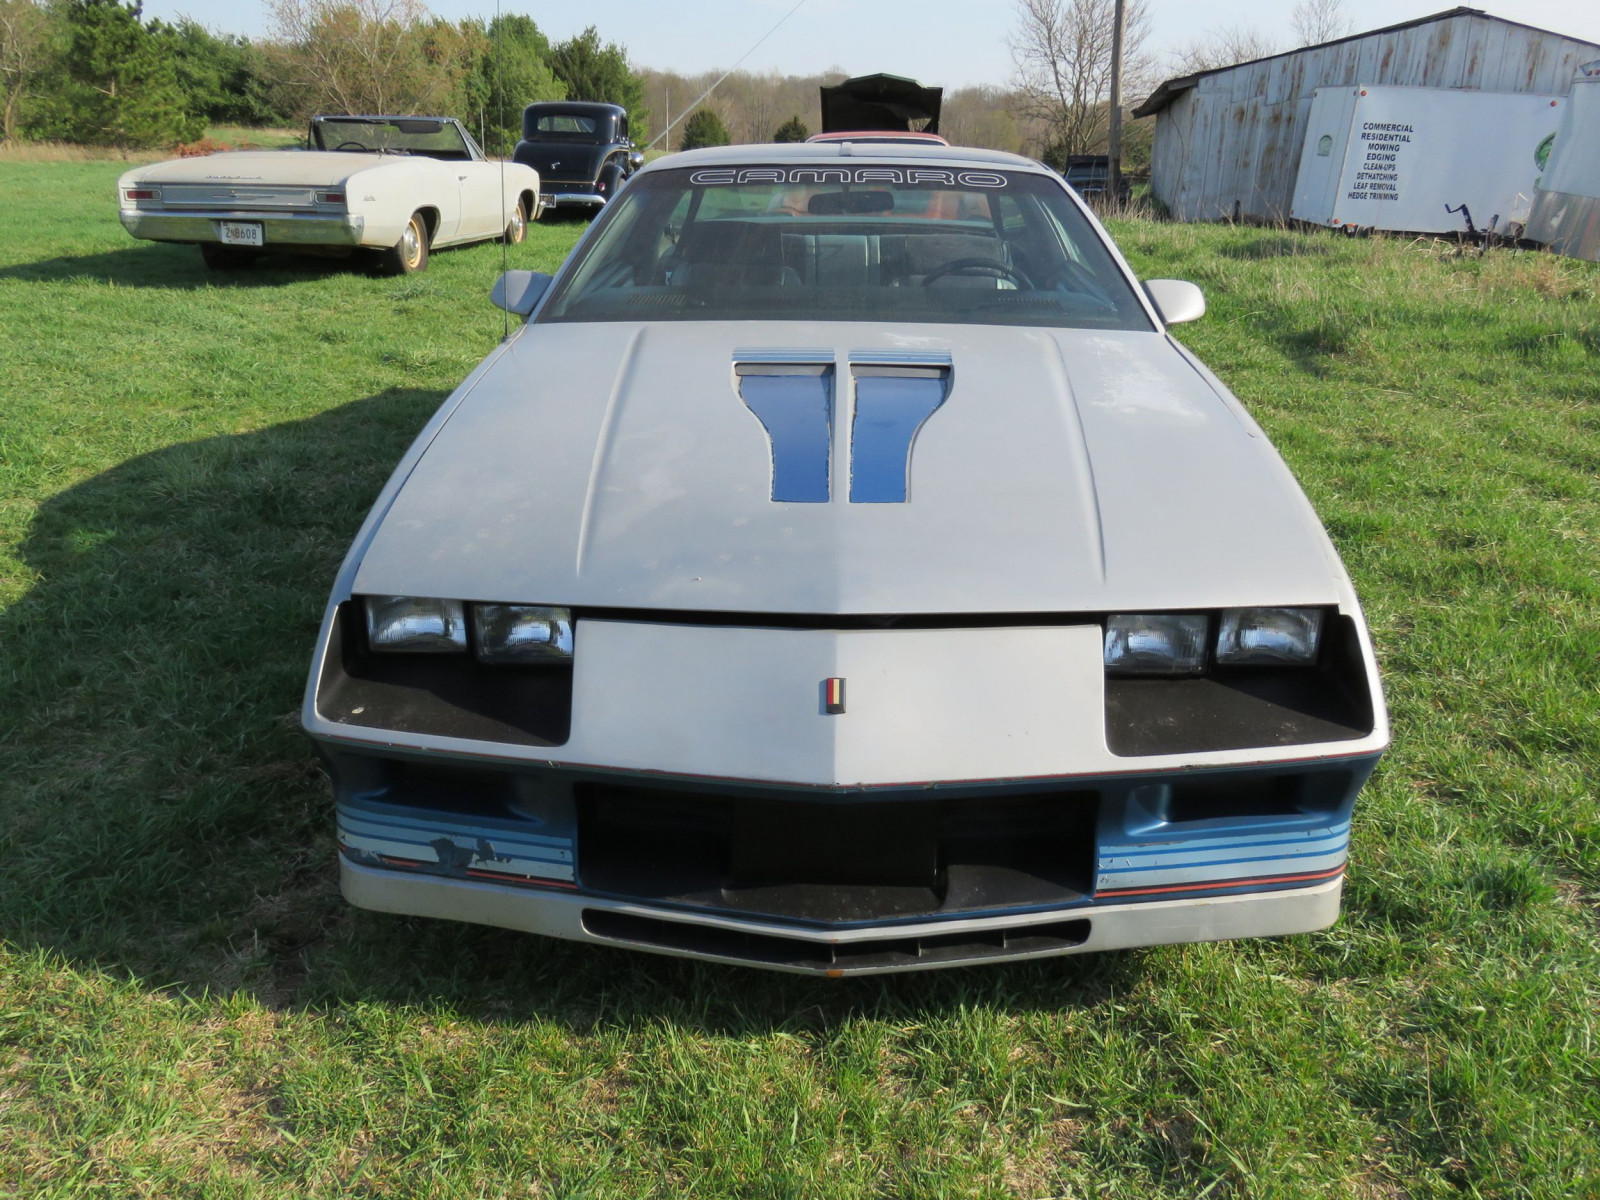 1982 Chevrolet Camaro Indianpolis 500 Edition Pace Car - Image 5